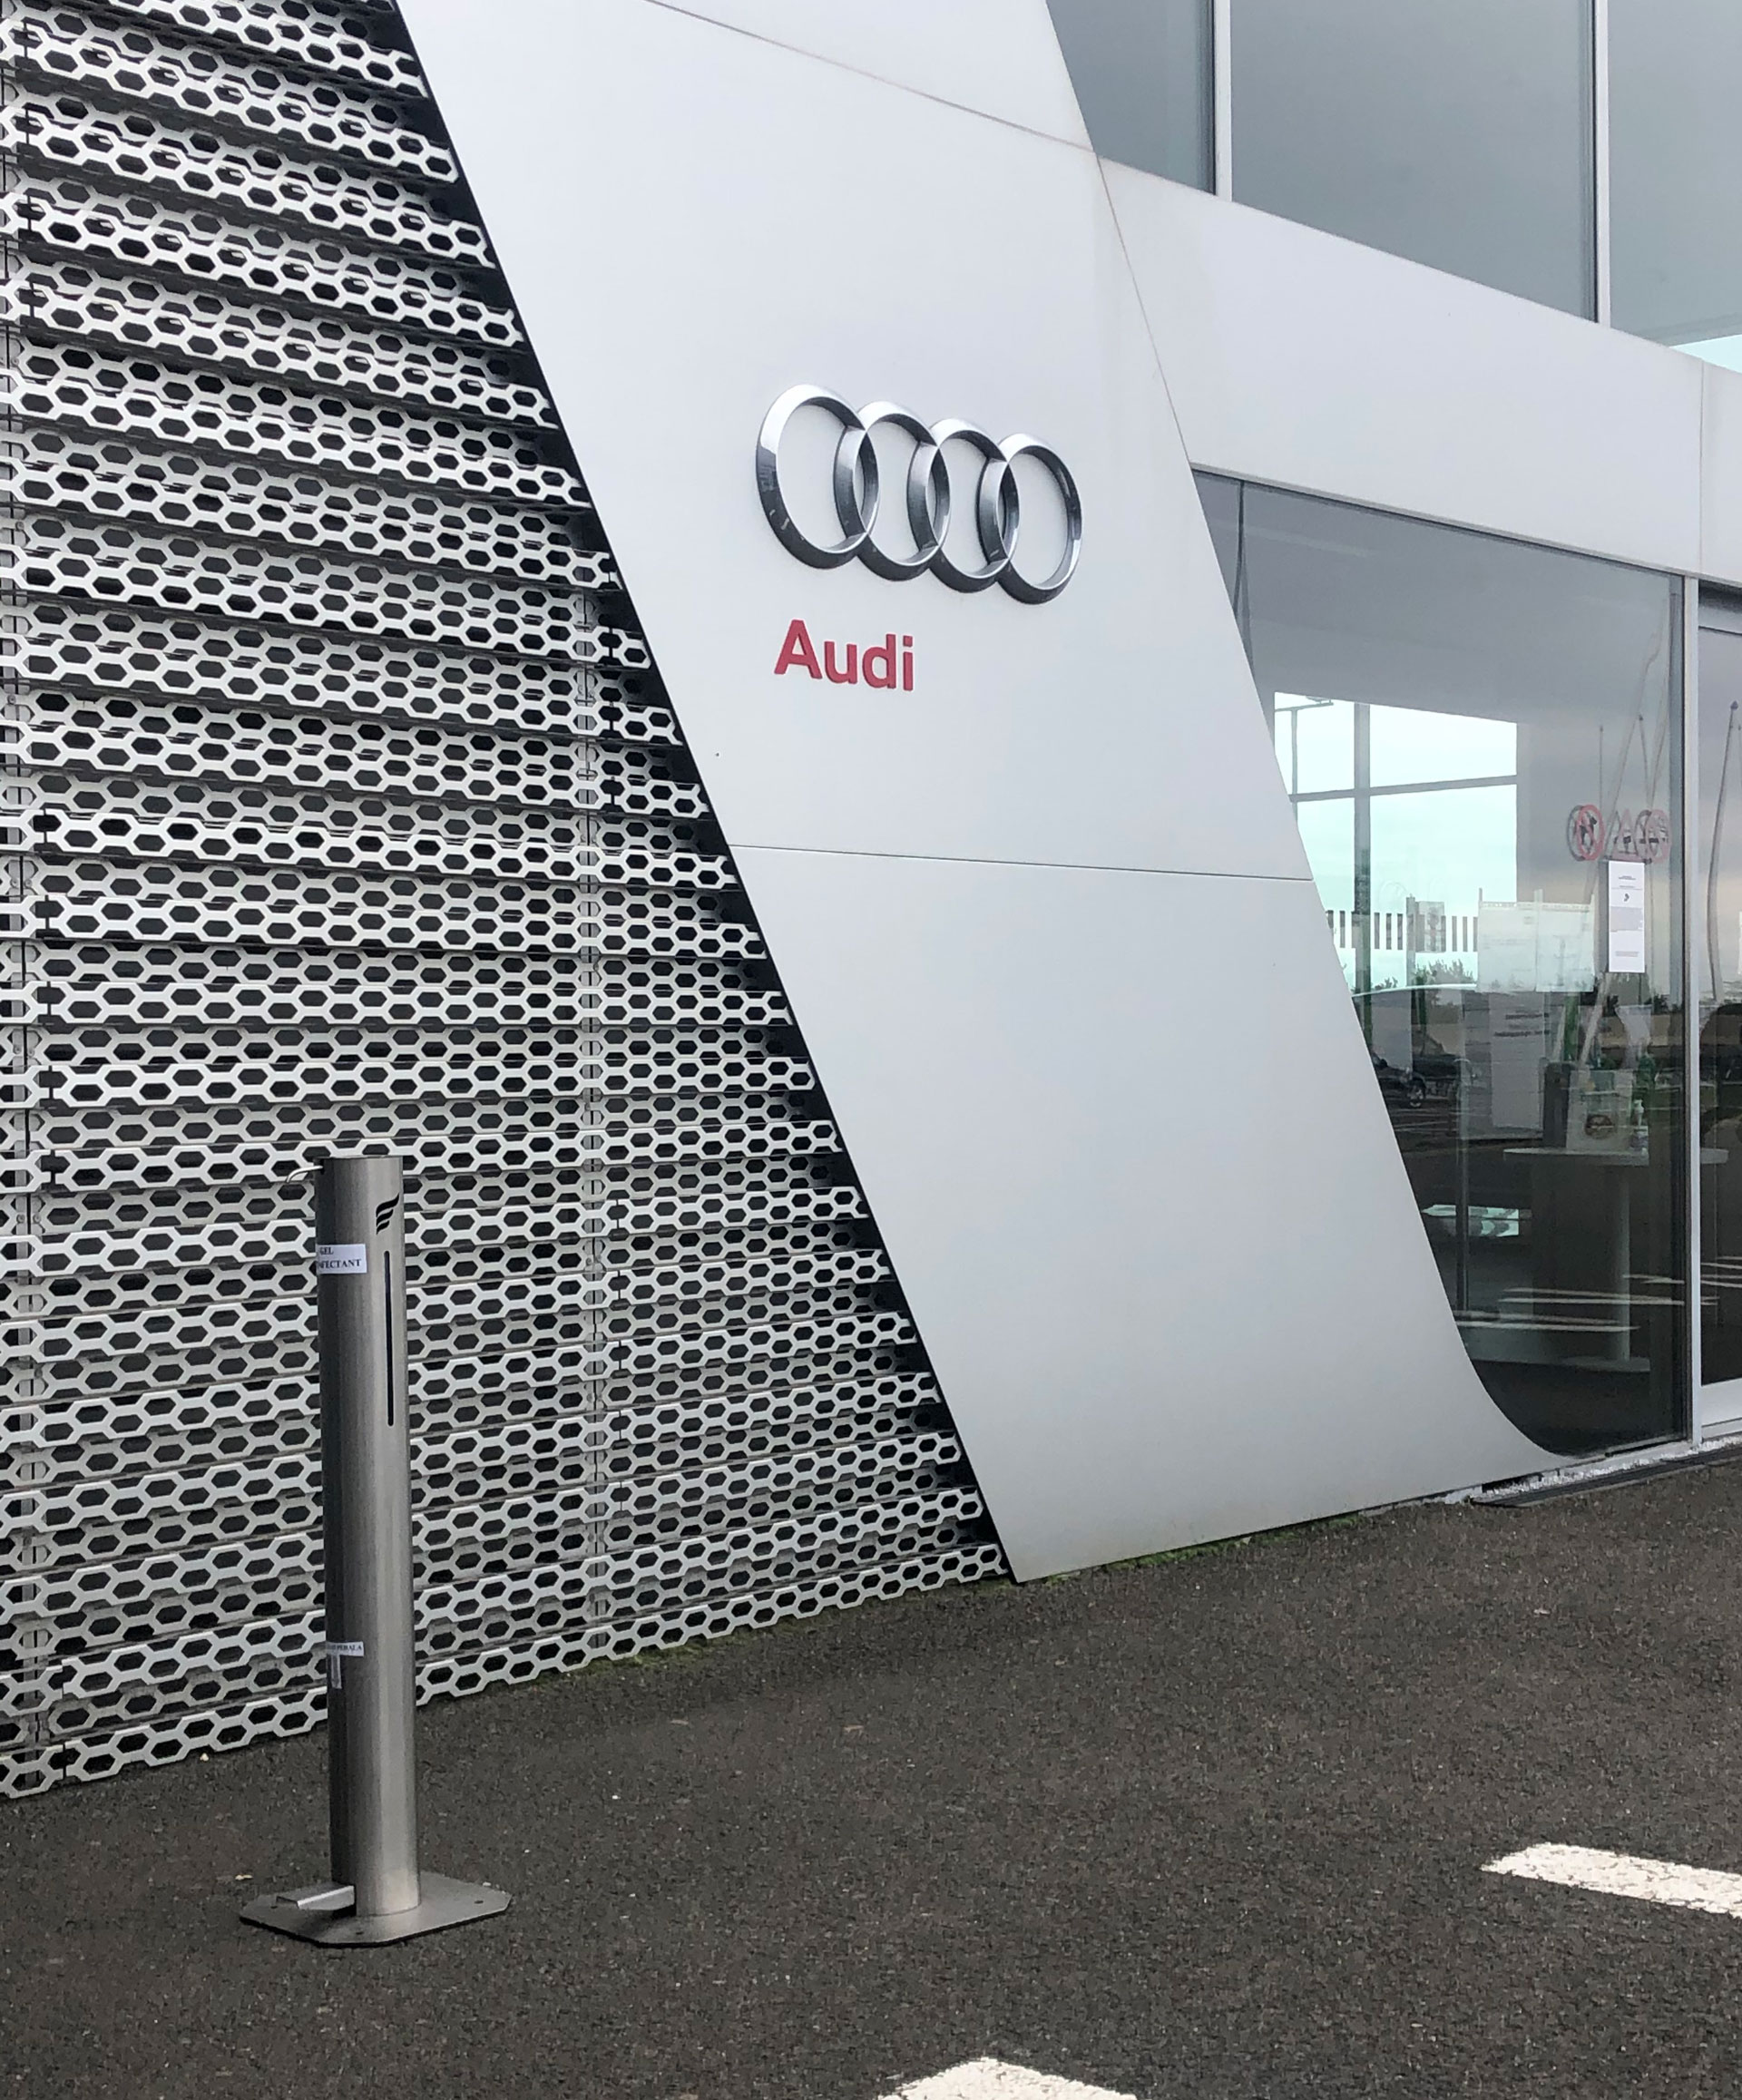 Audi loves Astreea®